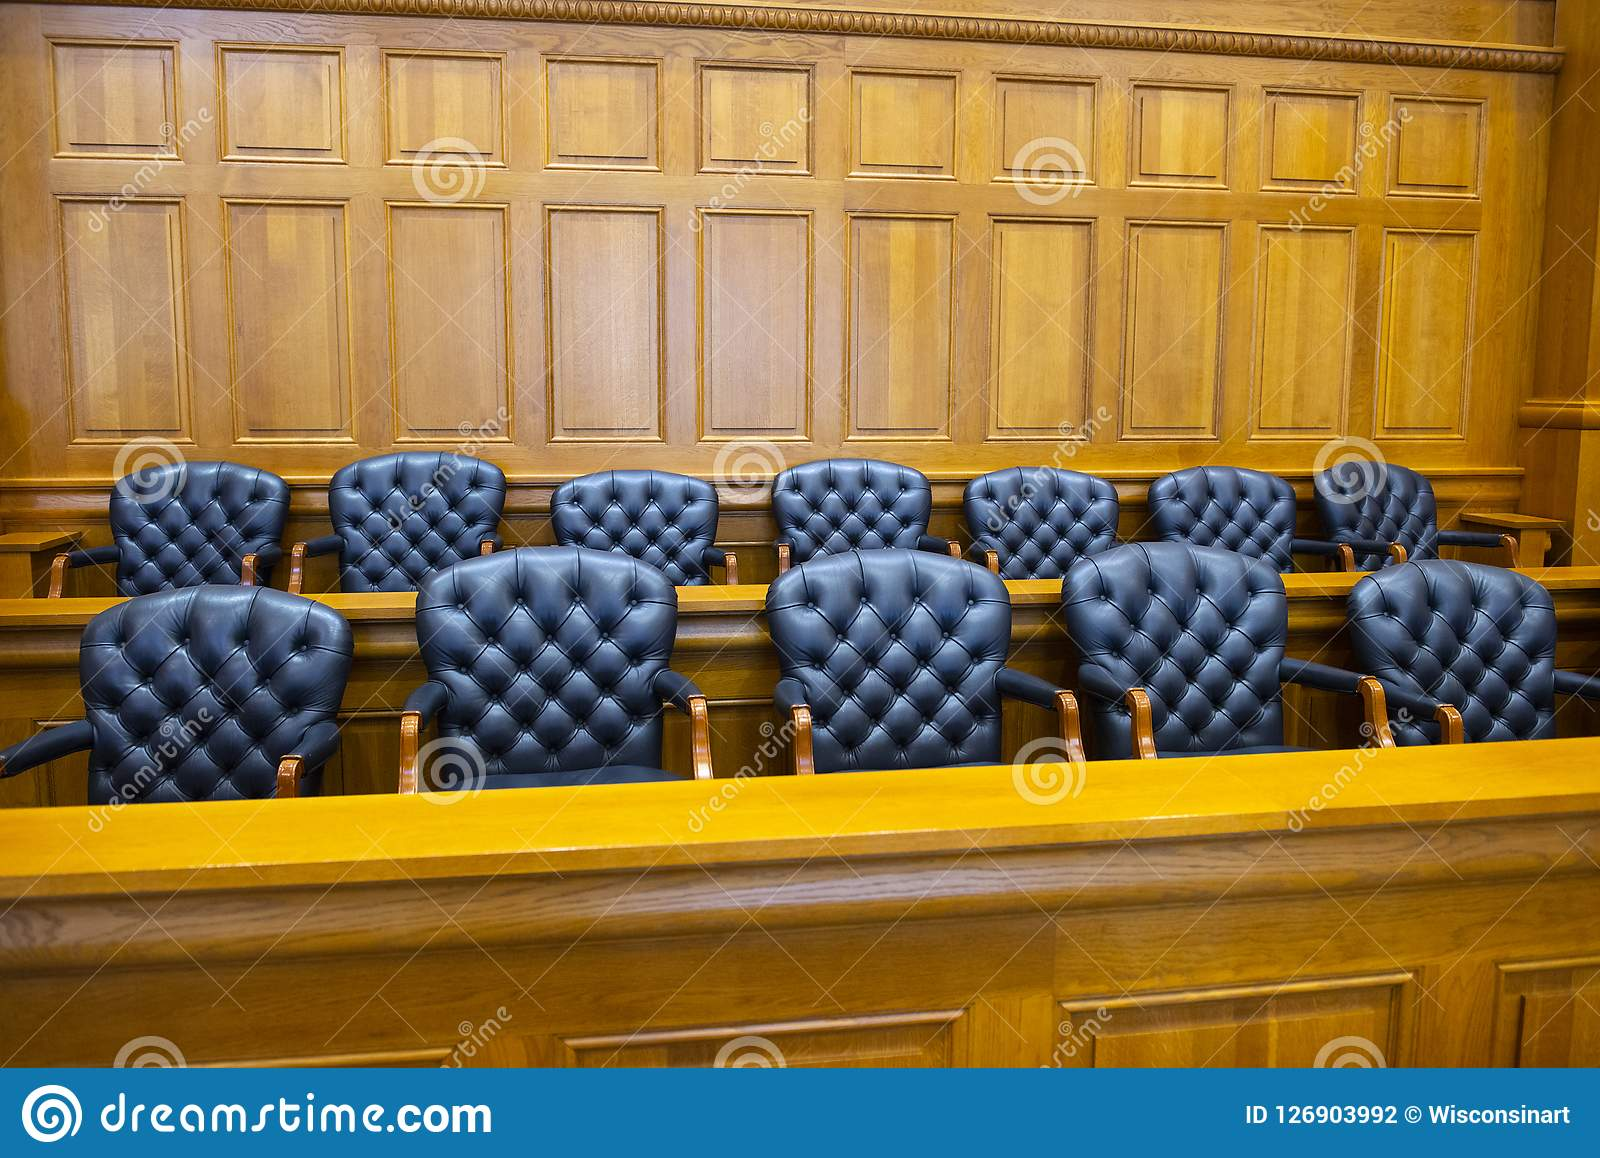 Jury Box, Law, Legal, Lawyer, Judge, Court Room